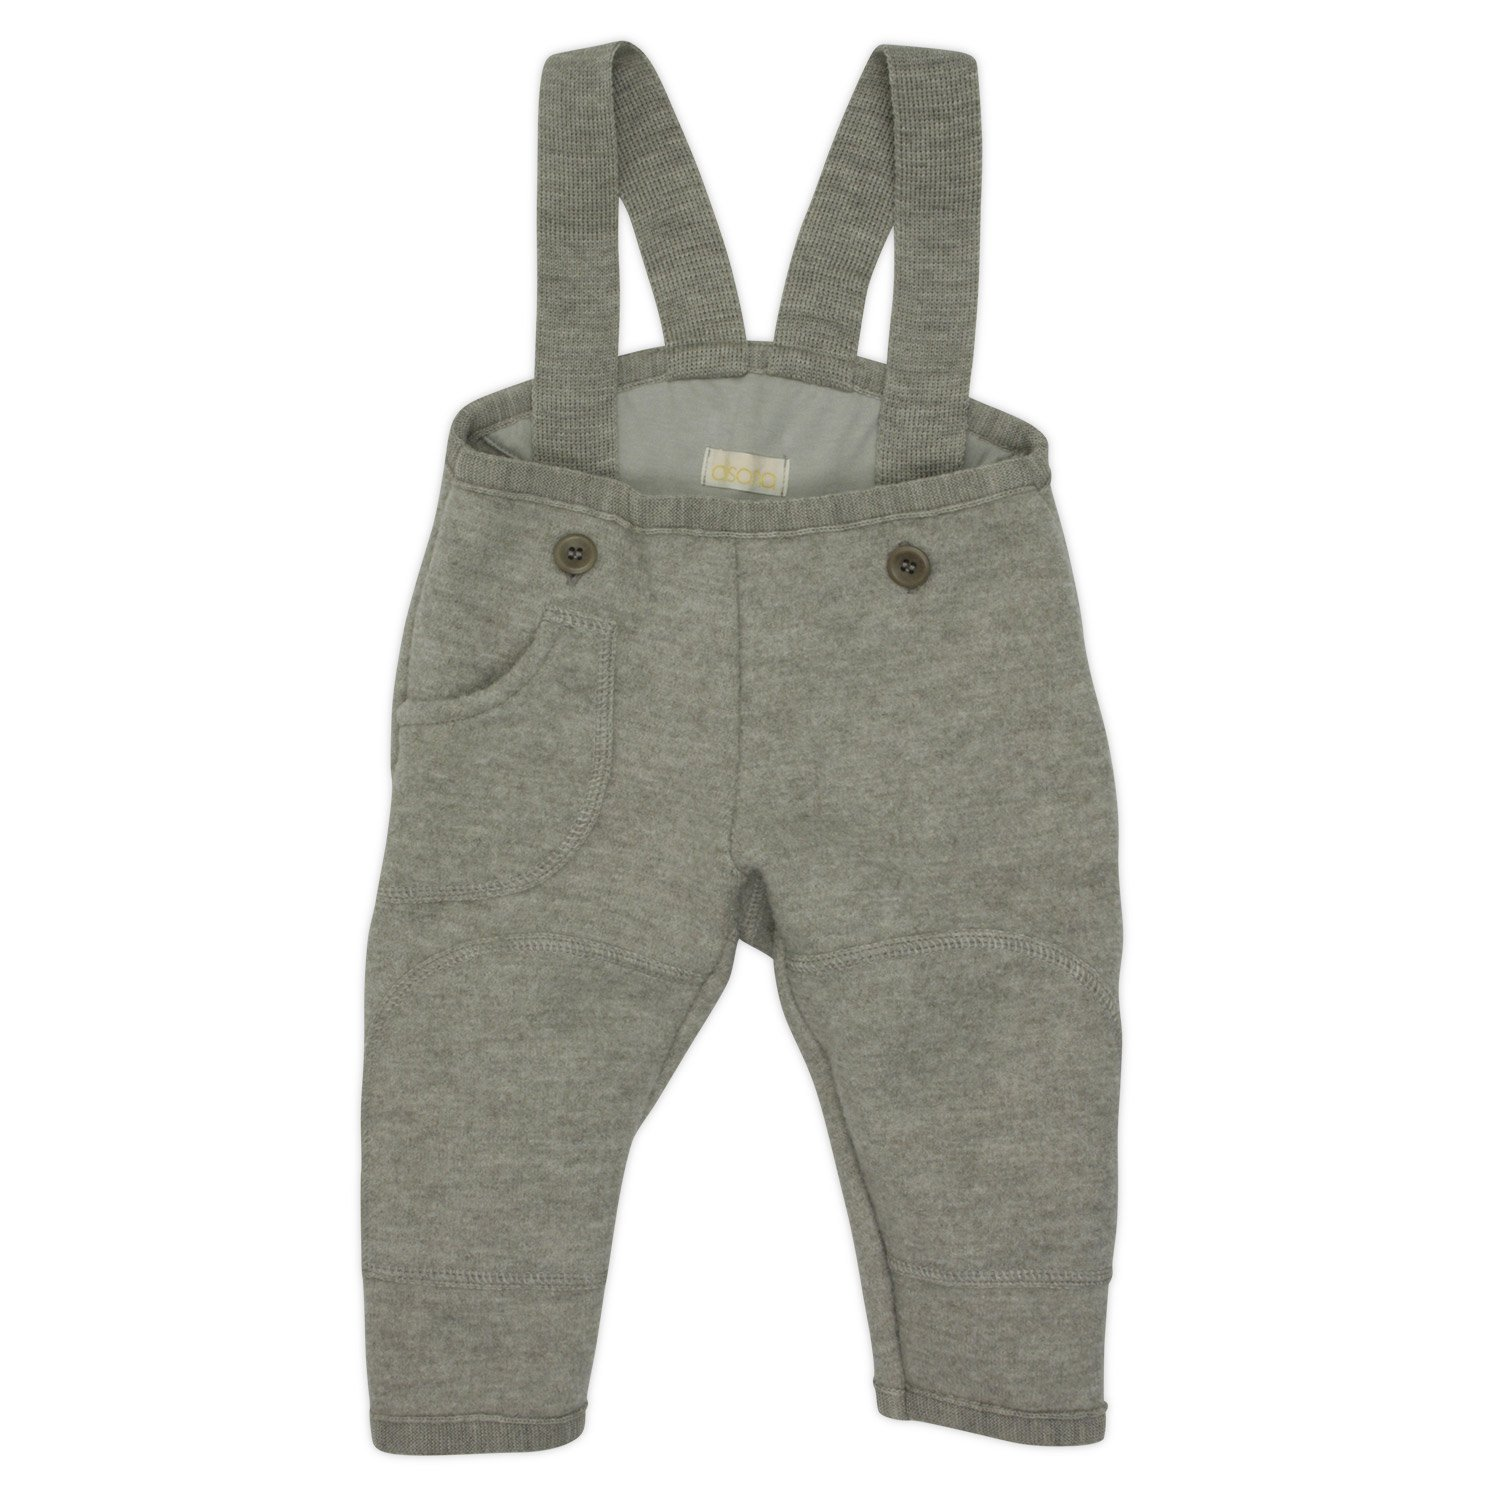 Baby Dungarees / Trousers in Organic Boiled Merino Wool Grey 74/80 6-12m Disana 26544-082-00550-21